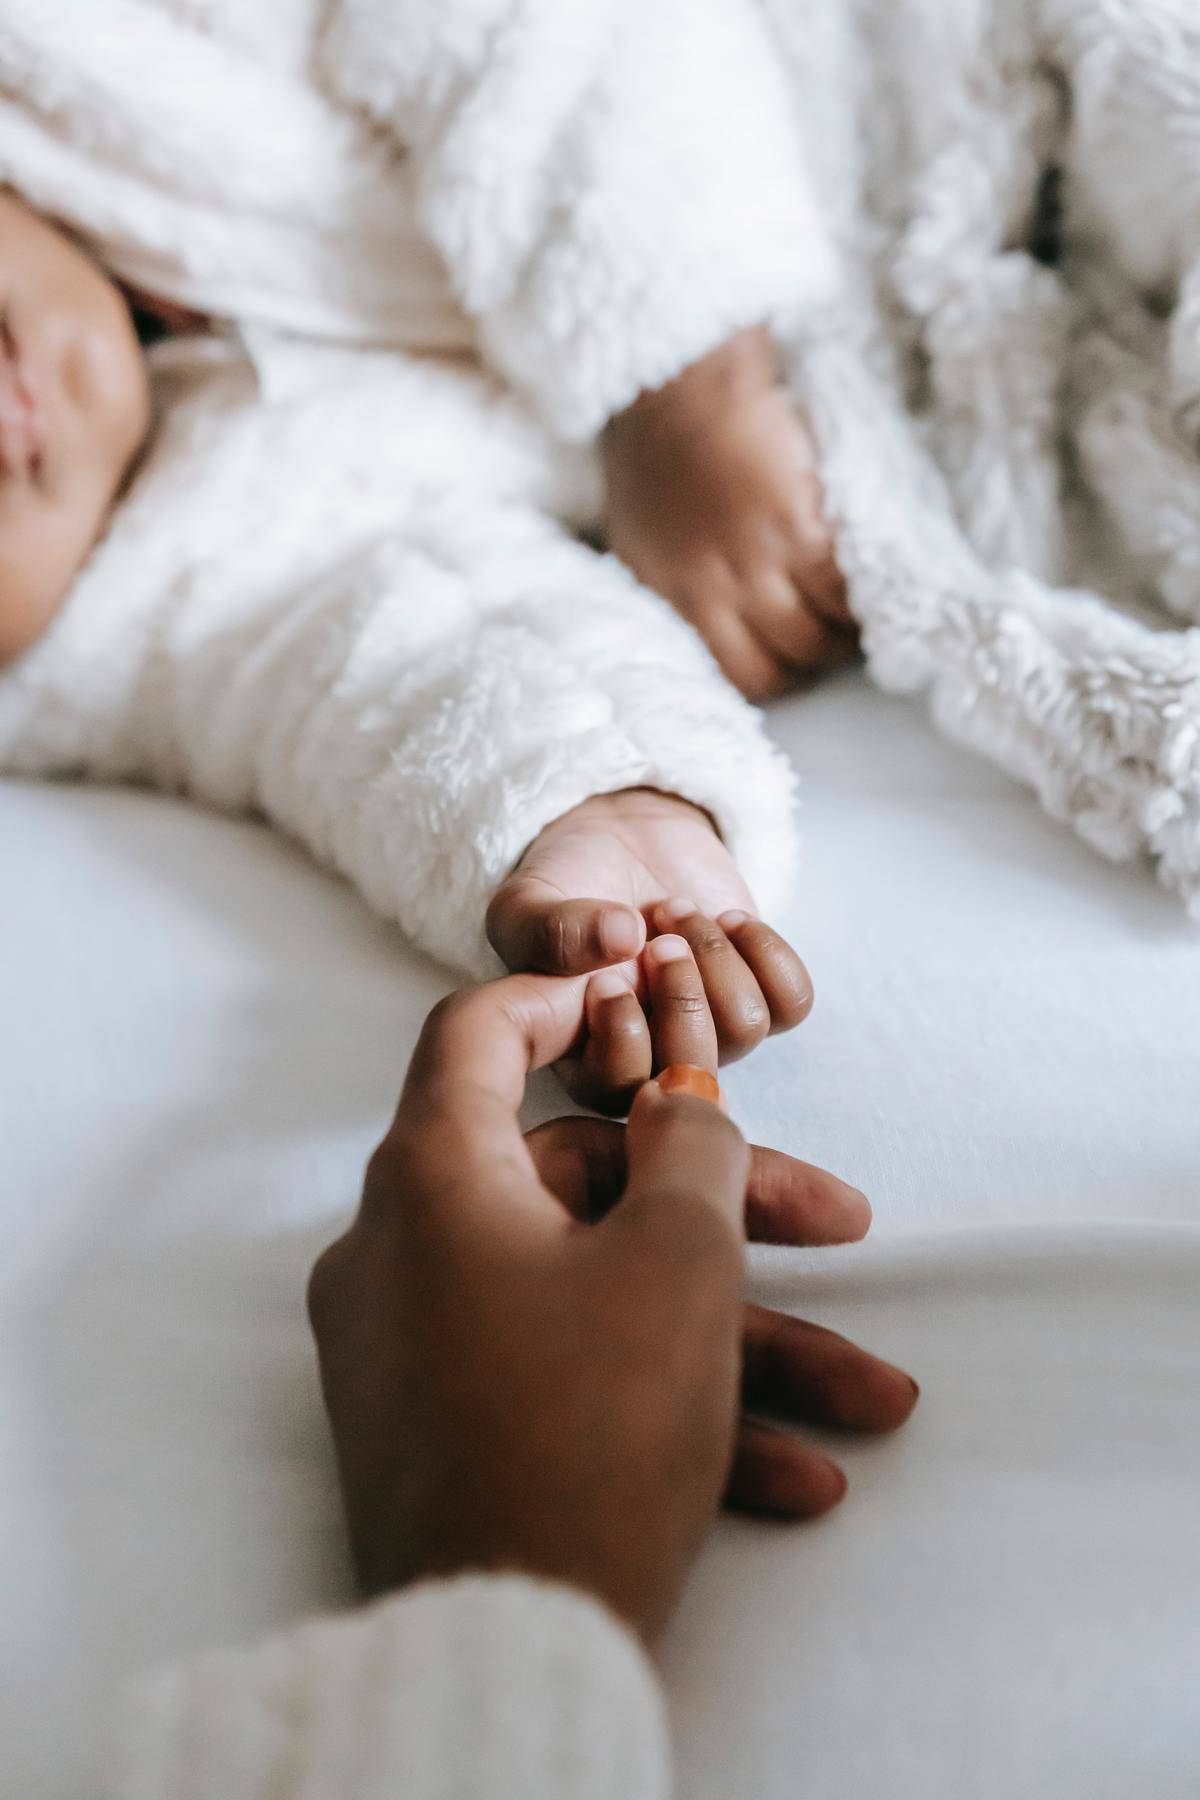 Mother holds infant's tiny hand